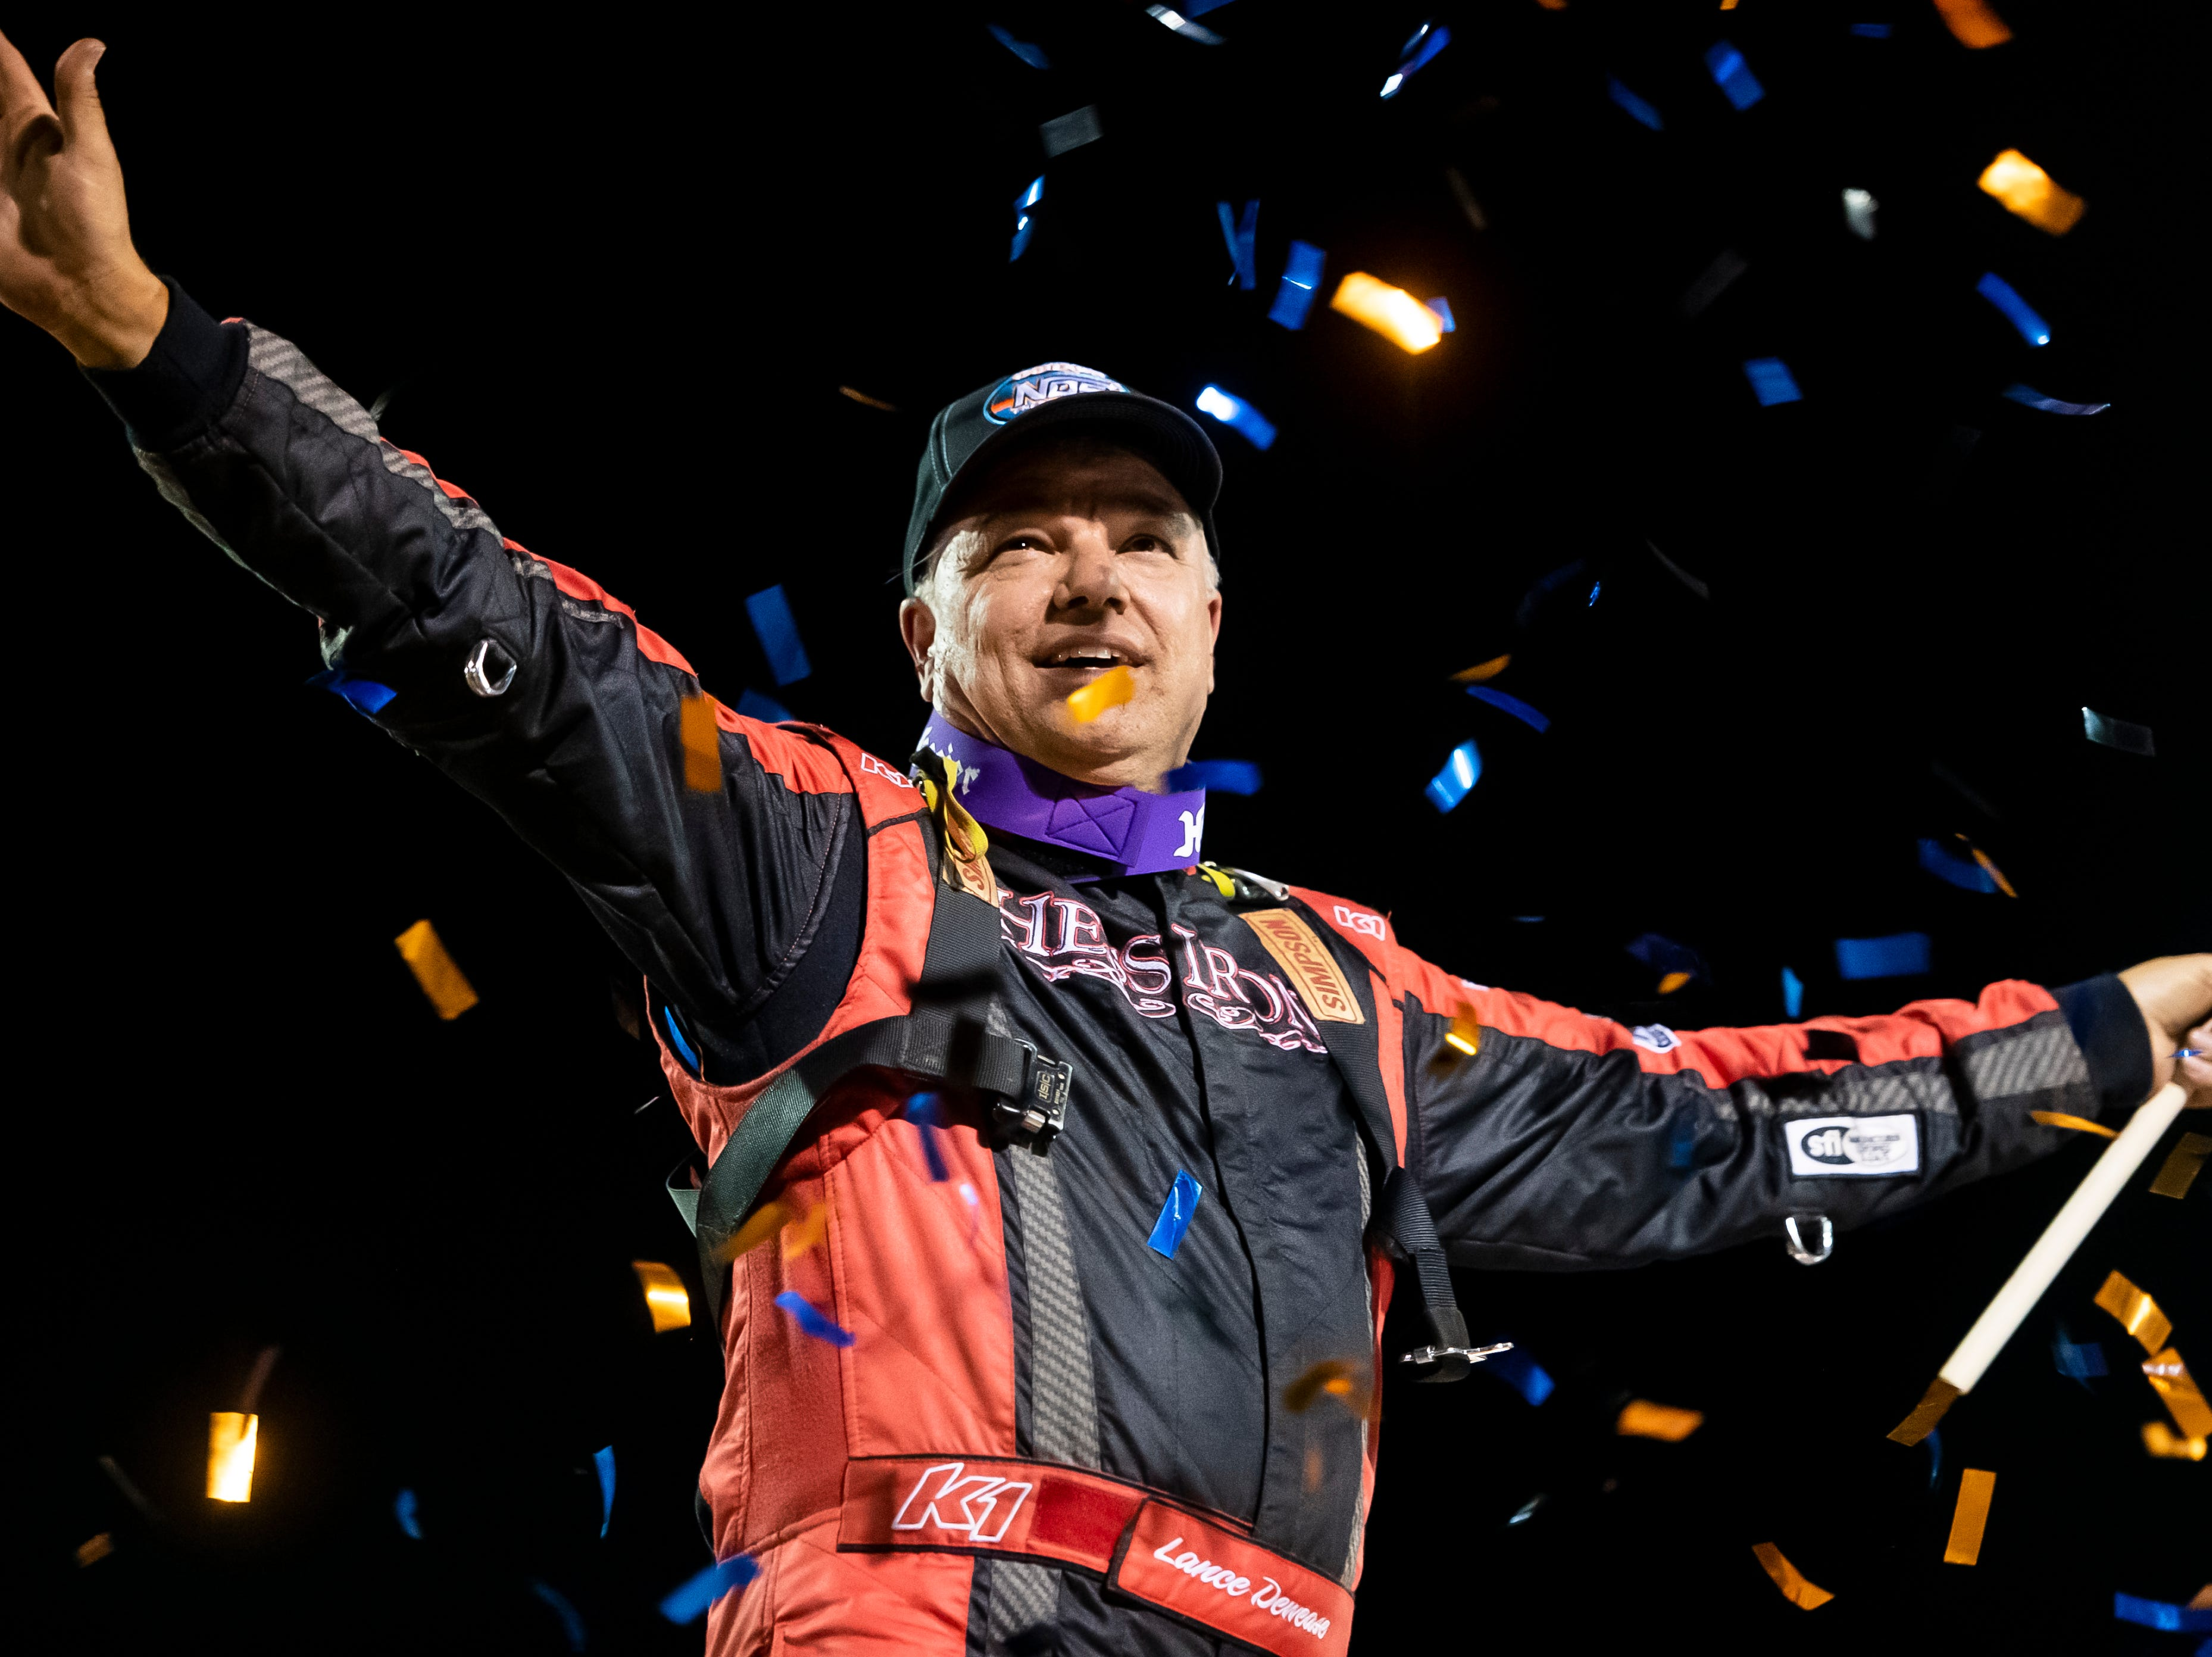 Lance Dewease celebrates after winning the feature race race in the World of Outlaws Gettysburg Clash at Lincoln Speedway in Abbottstown on Wednesday, May 15, 2019.